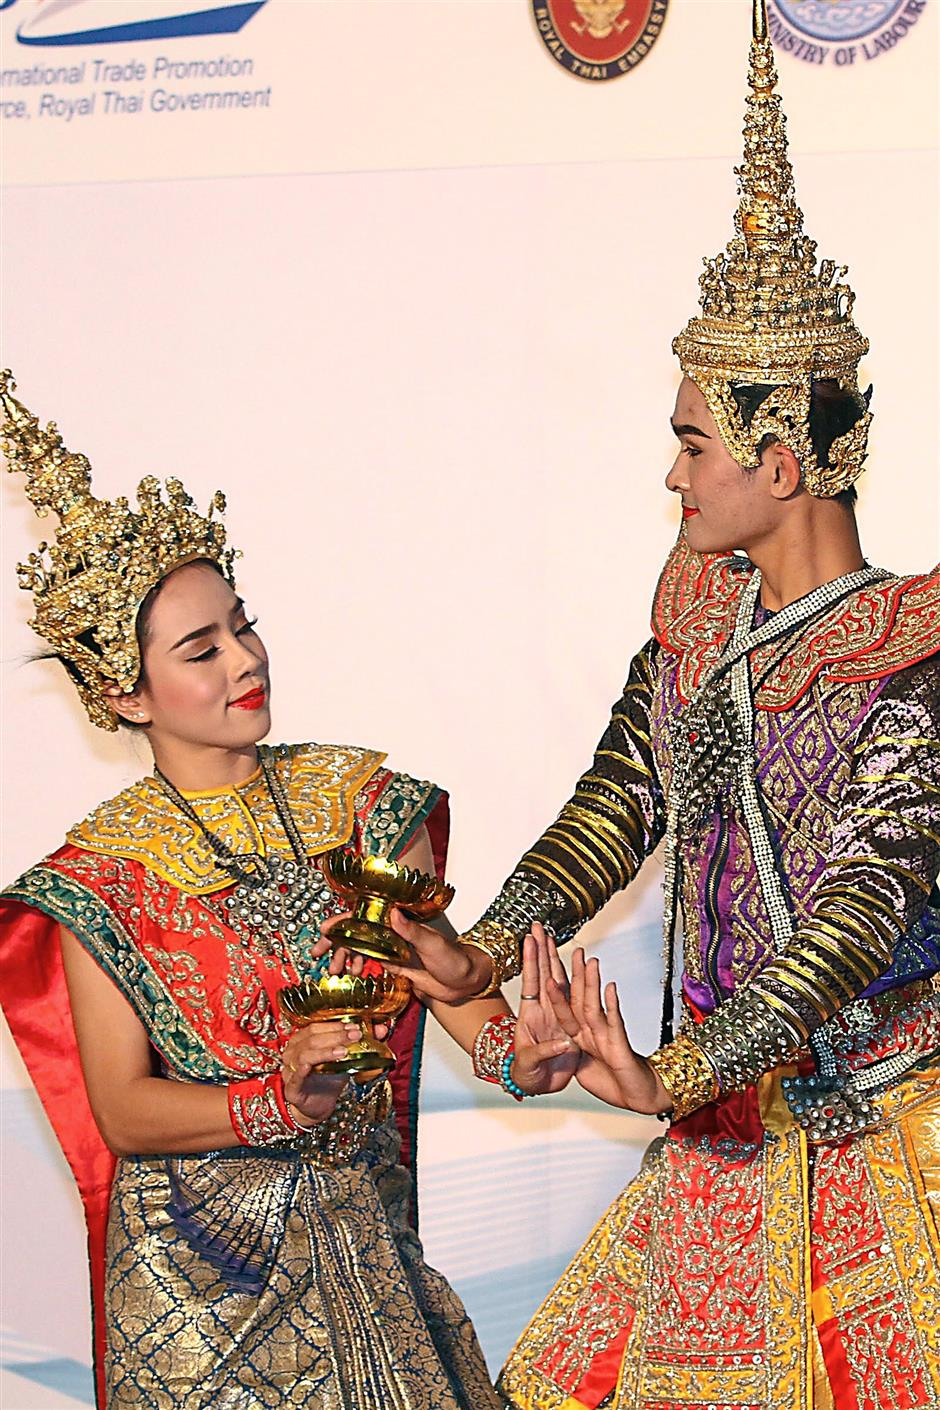 1 Dancers in traditional costumes posing for a group photo after the opening ceremony of the trade fair. 2 Visitors checking out a booth offering instant noodles. 3 The trade fair also features Thai handicrafts 4 Each of the dances featured in Thailand Week 2015 has a unique choreography originating from the different regions of Thailand. — BRIAN MOH / The Star